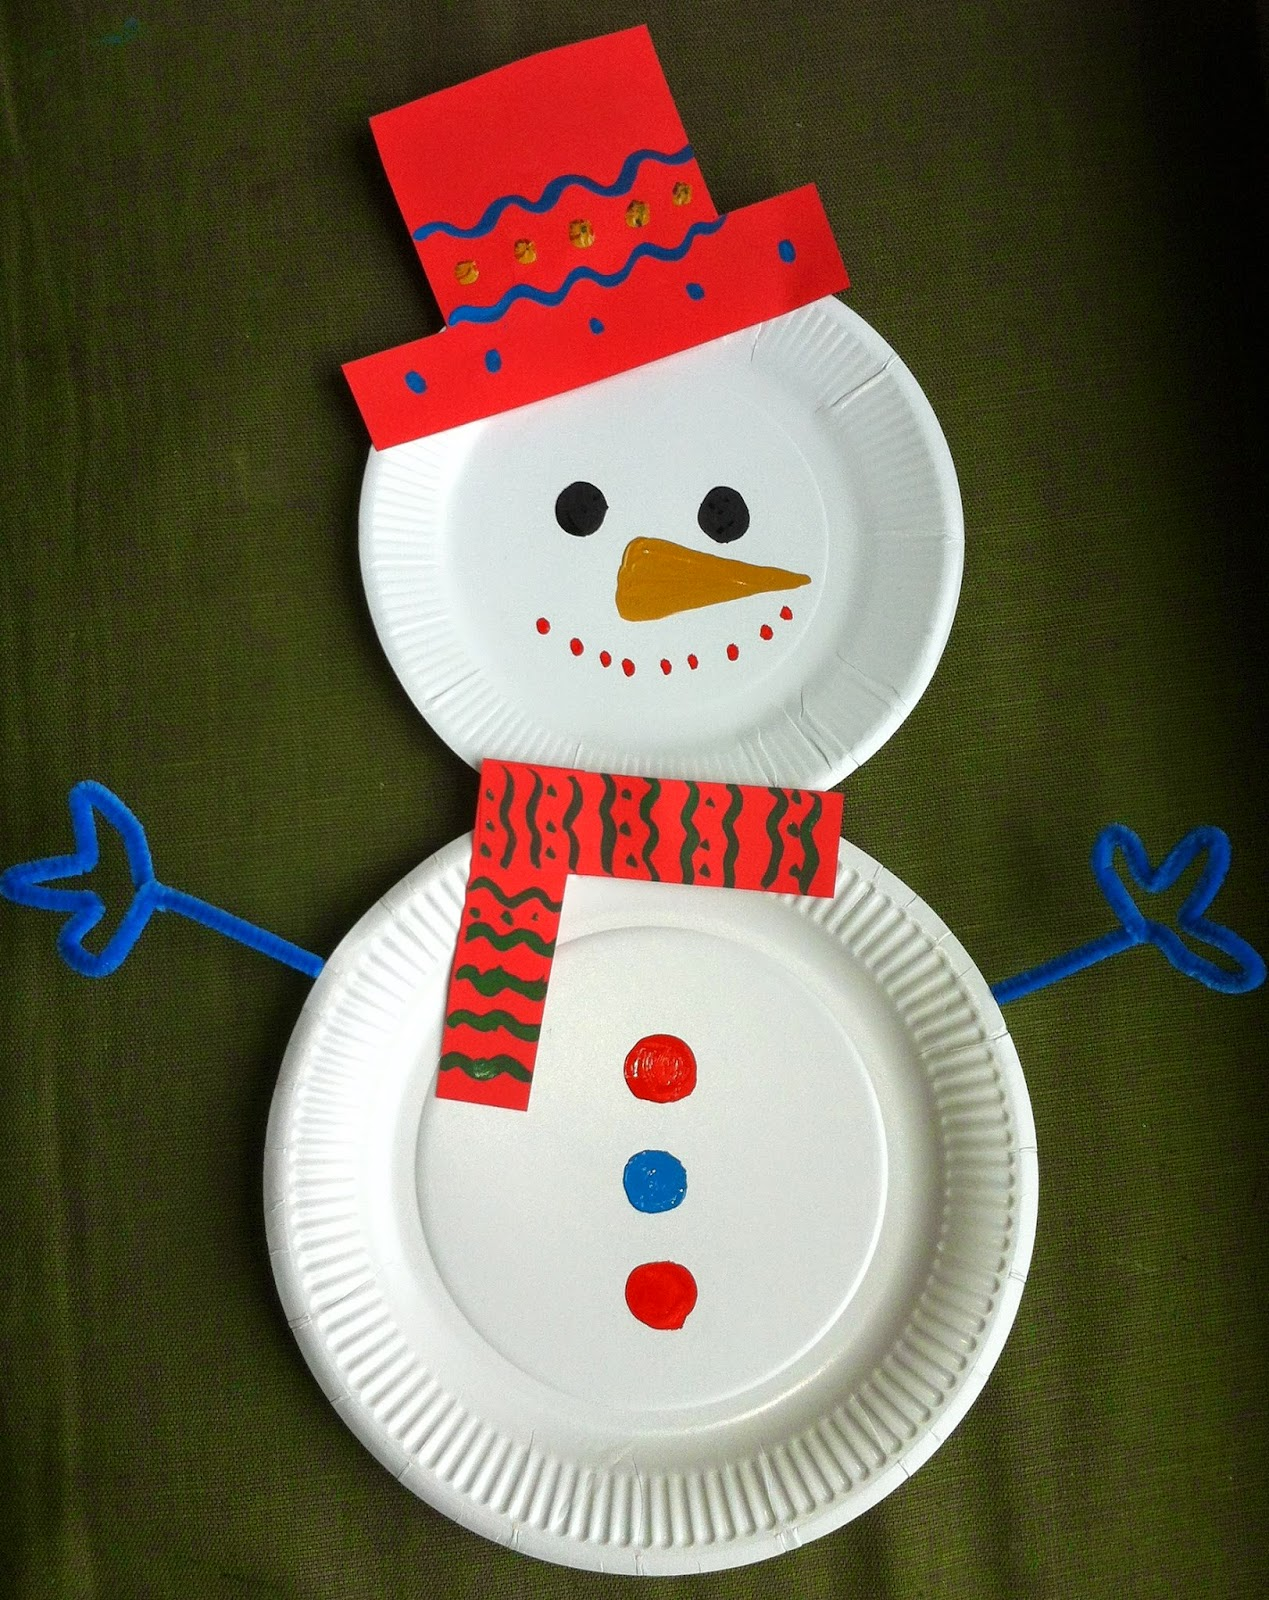 Good Arts And Crafts Ideas For Christmas Part - 12: Paper Plate For Christmas Craft ~ Creative Art And Craft Ideas Paper Plate  Heart Sewing Craft. Kids Can Create A Beautiful Piece Of Custom Art Work By  ...